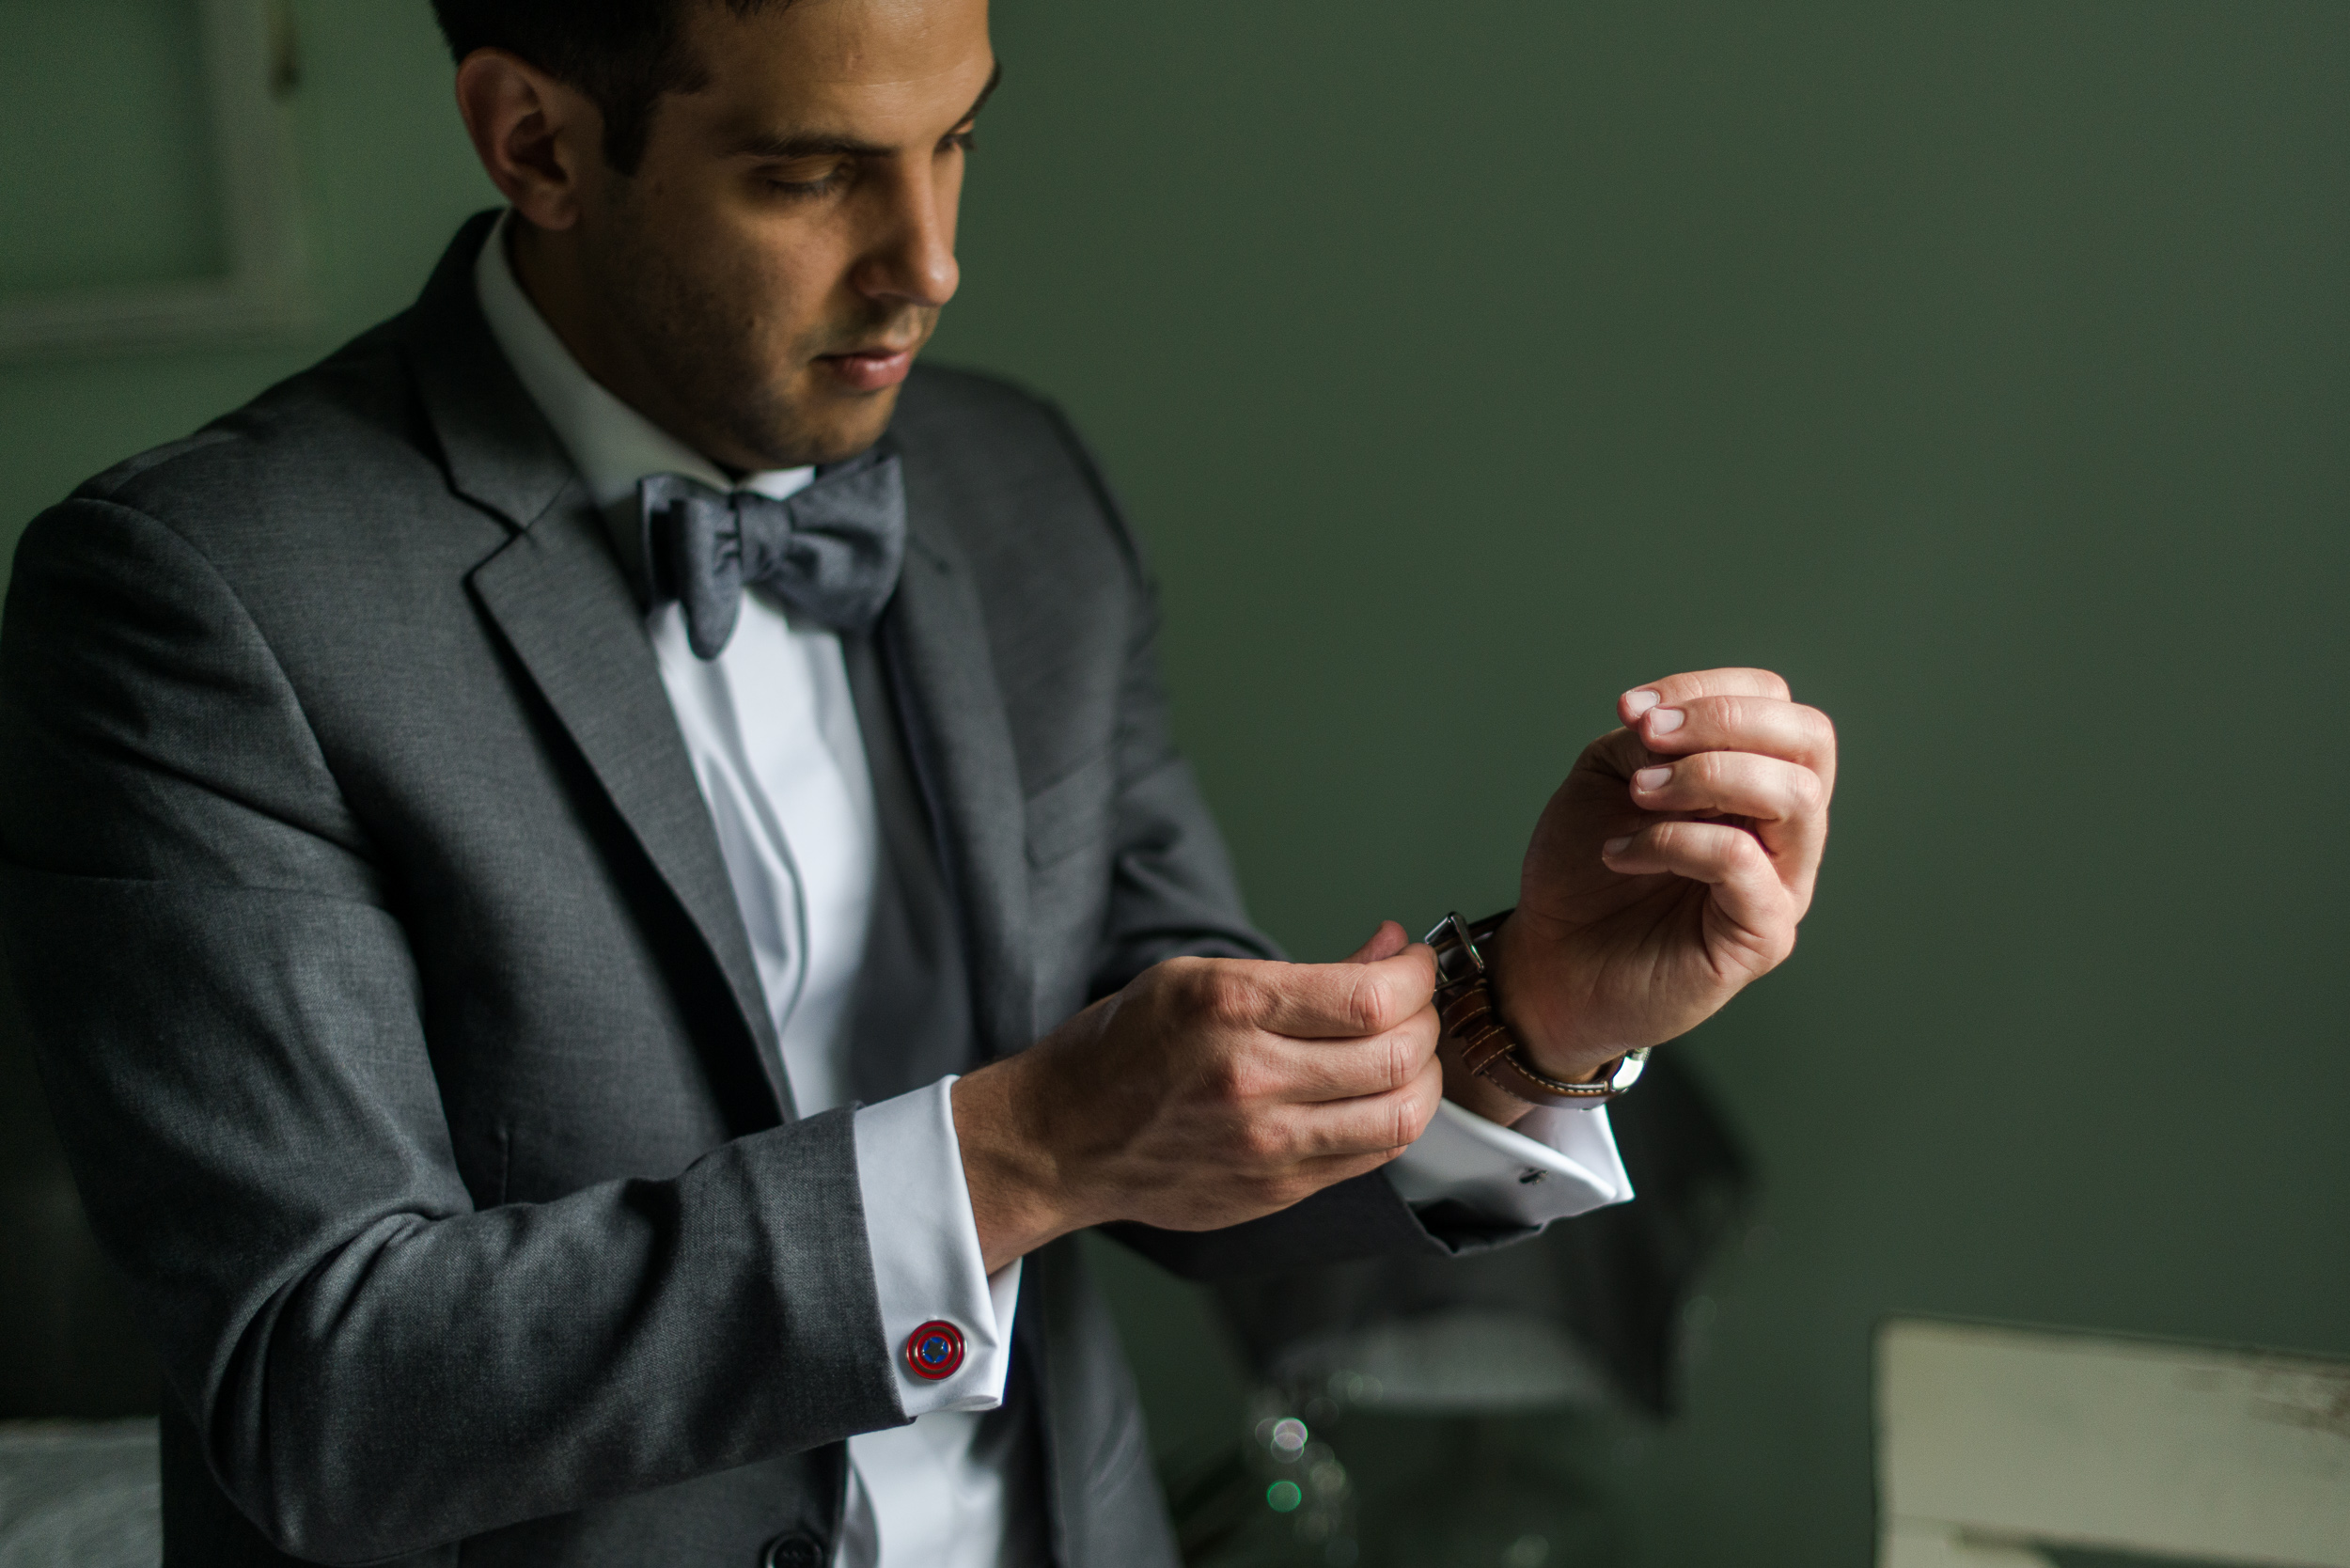 The groom puts on his watch and Captain America cufflinks before his wedding at St. Veronica Catholic Church in Chantilly, Virginia